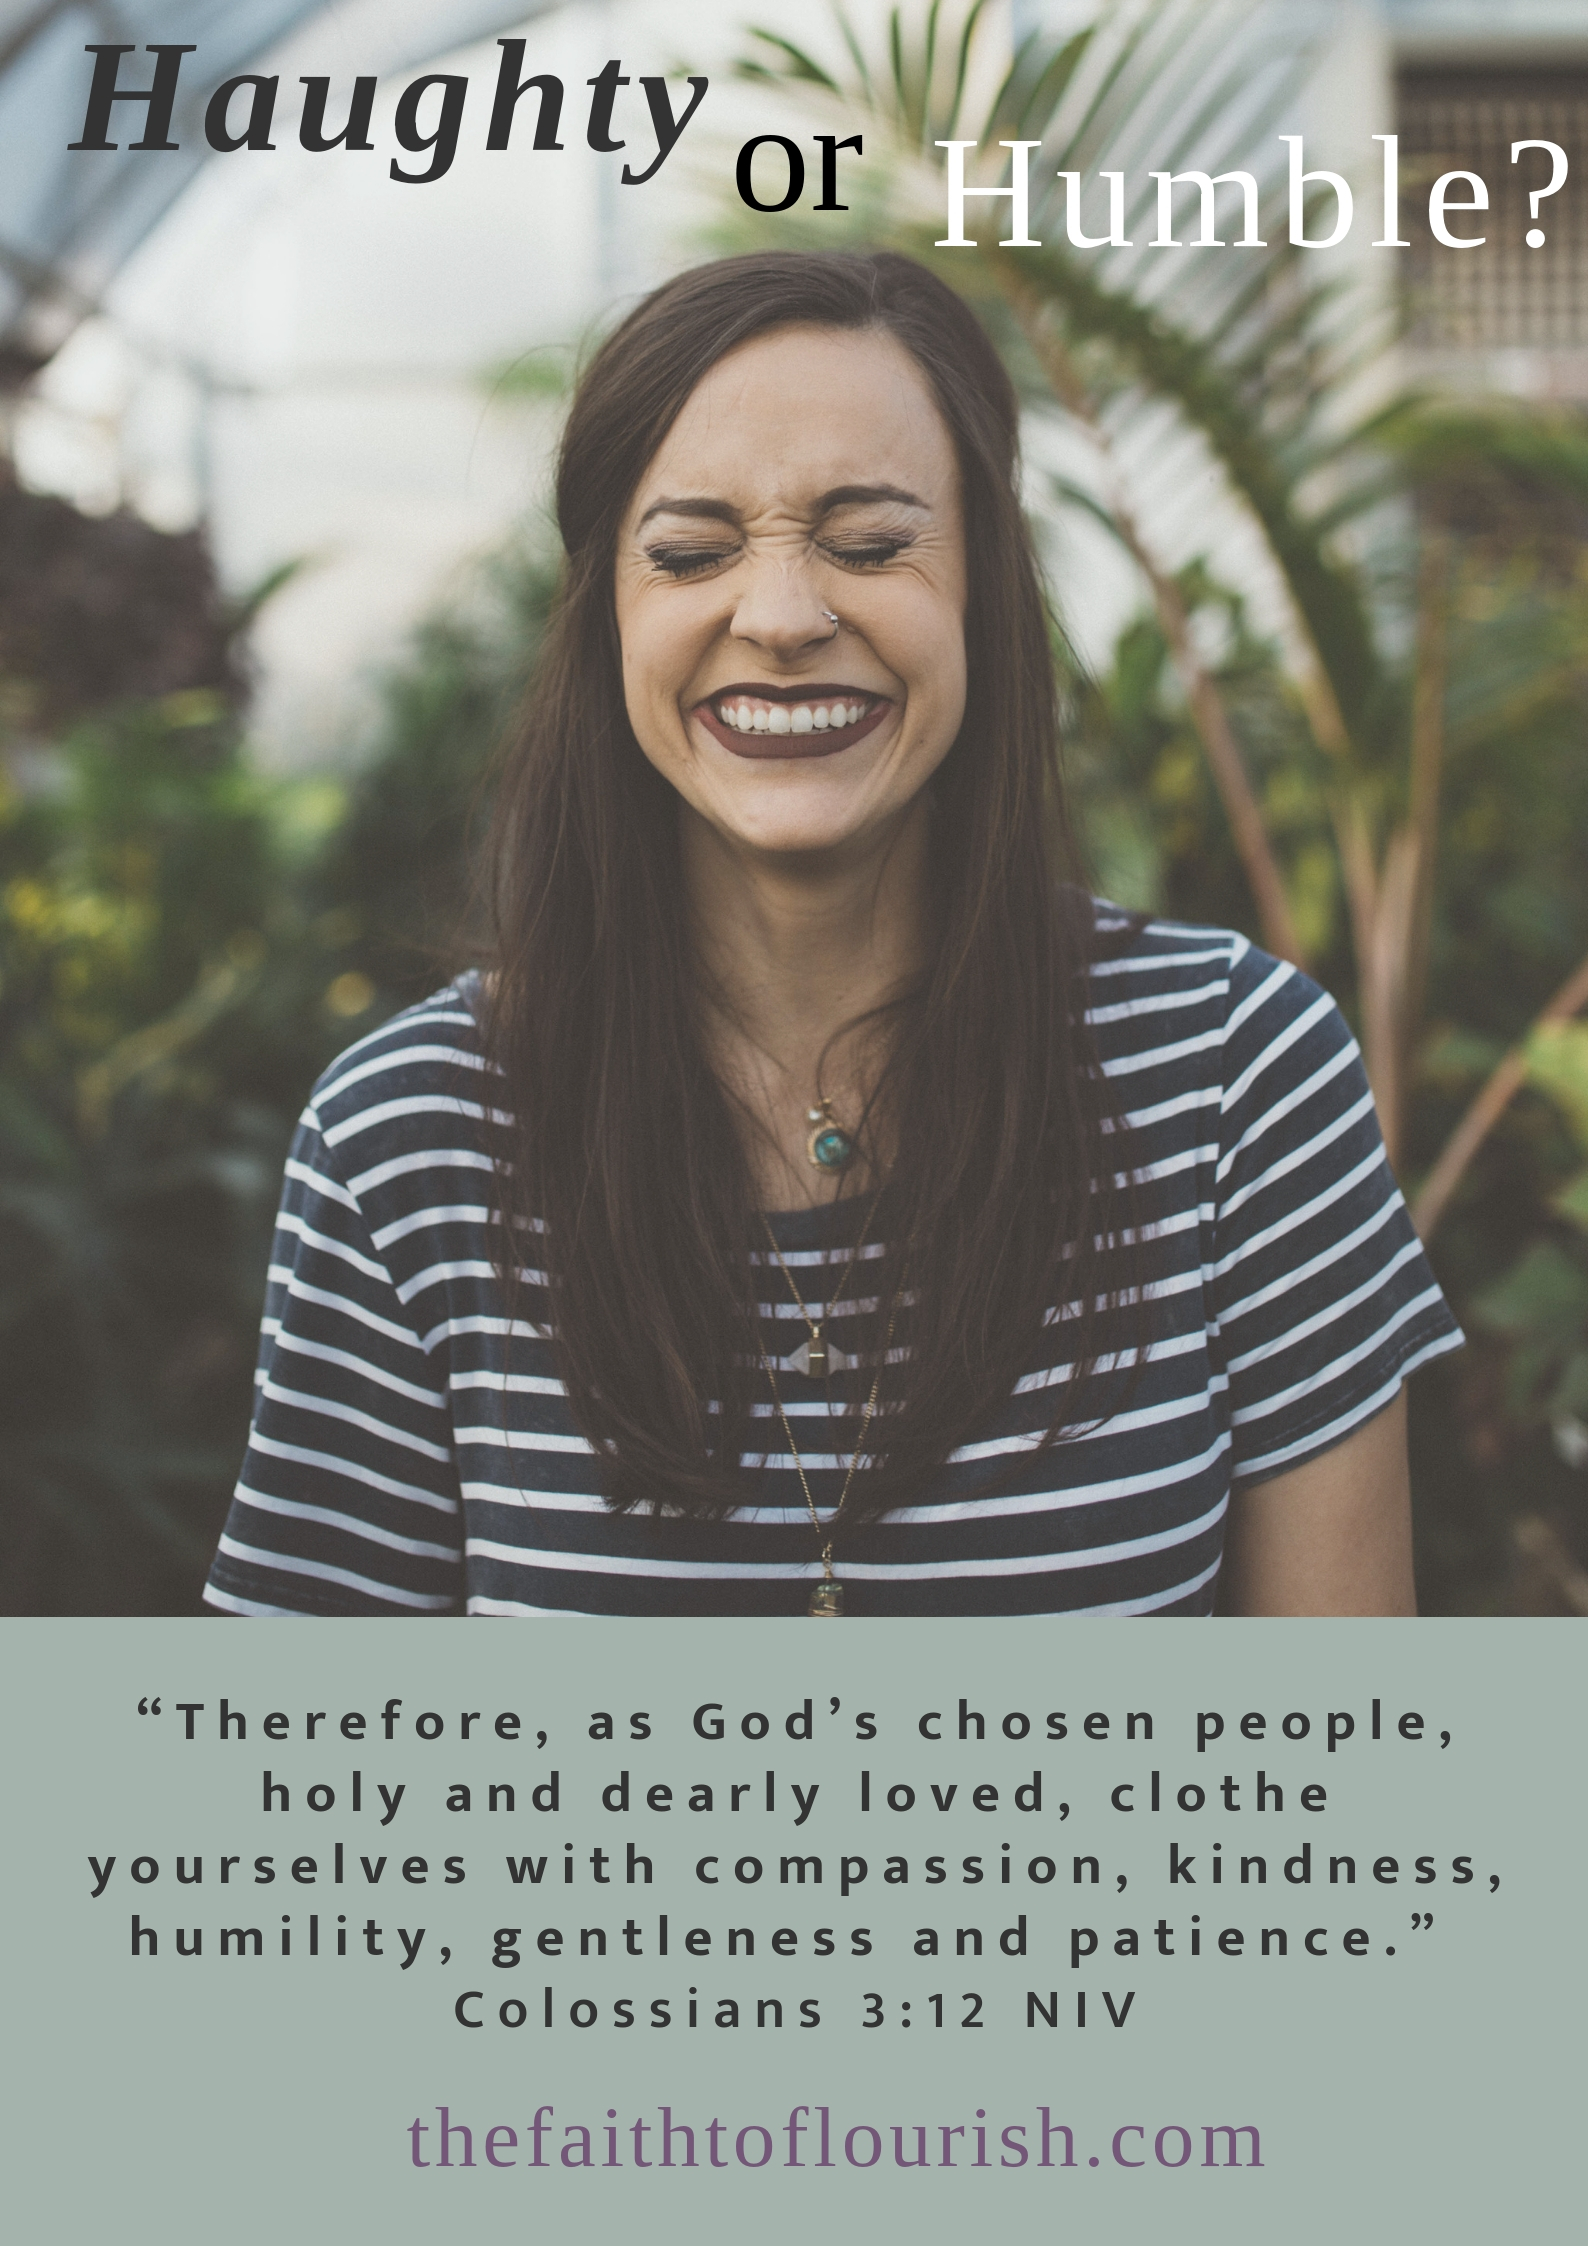 when our loved ones struggle with addiction, mental illness, or if they act out rebelliously, we pray to find the balance between enabling them and abandoning them. Learning to respond in humility rather than being haughty is a crucial step in communicating effectively with our prodigals. Dawn Ward shares insight into how to speak the truth in love when people we love are out of control. Read now or save or pin for later.